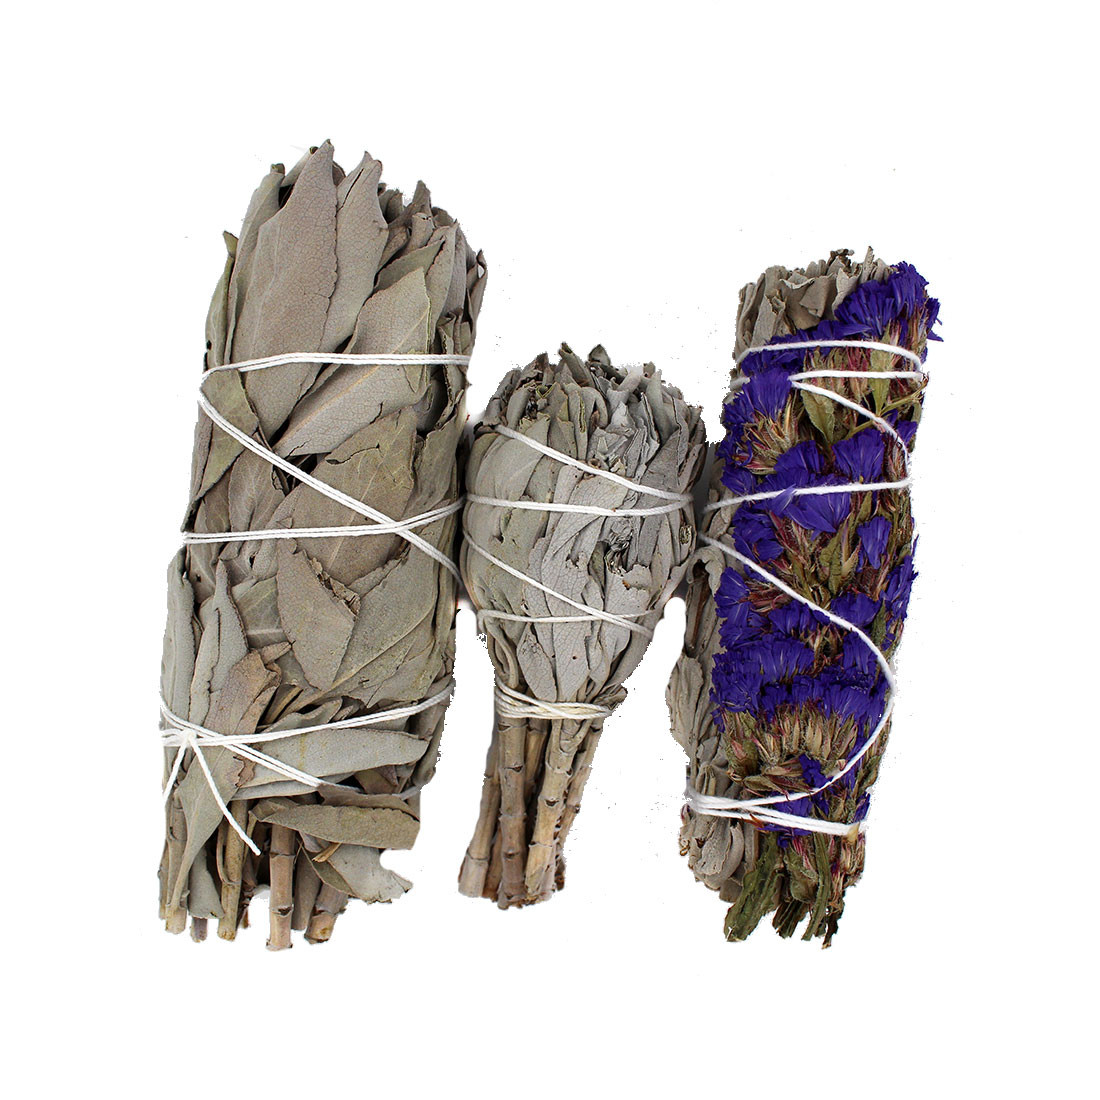 3-pack California hand wrapped sage wants for smudging, meditation, purifying your aura and cleansing your space.